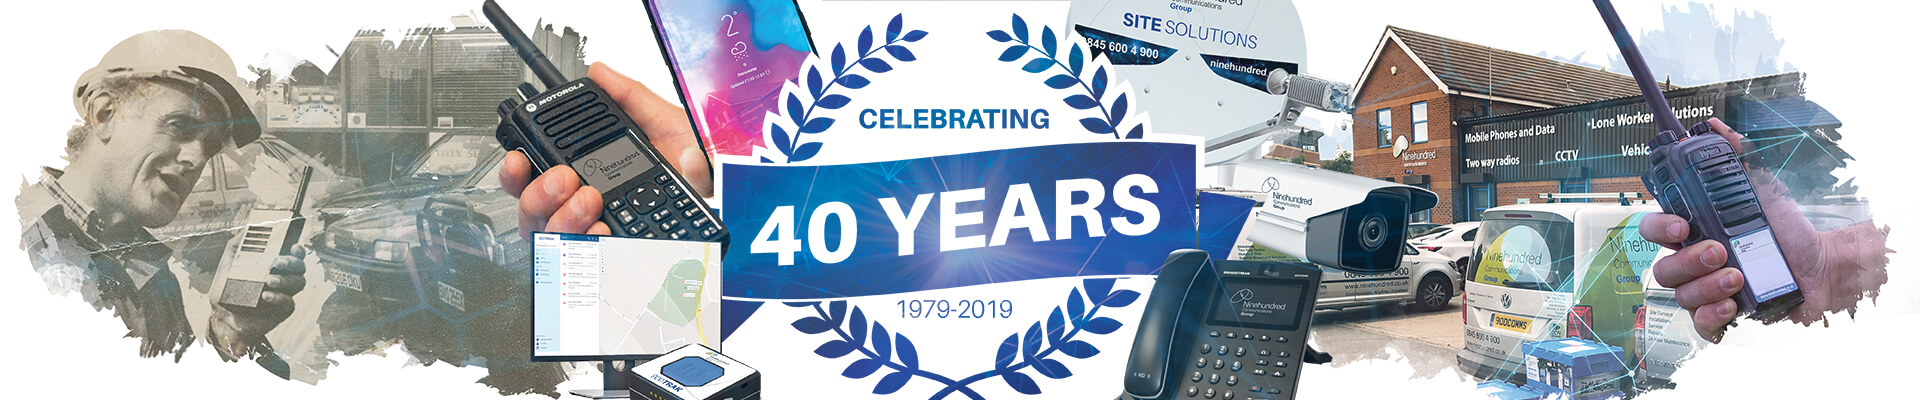 40 years banner image